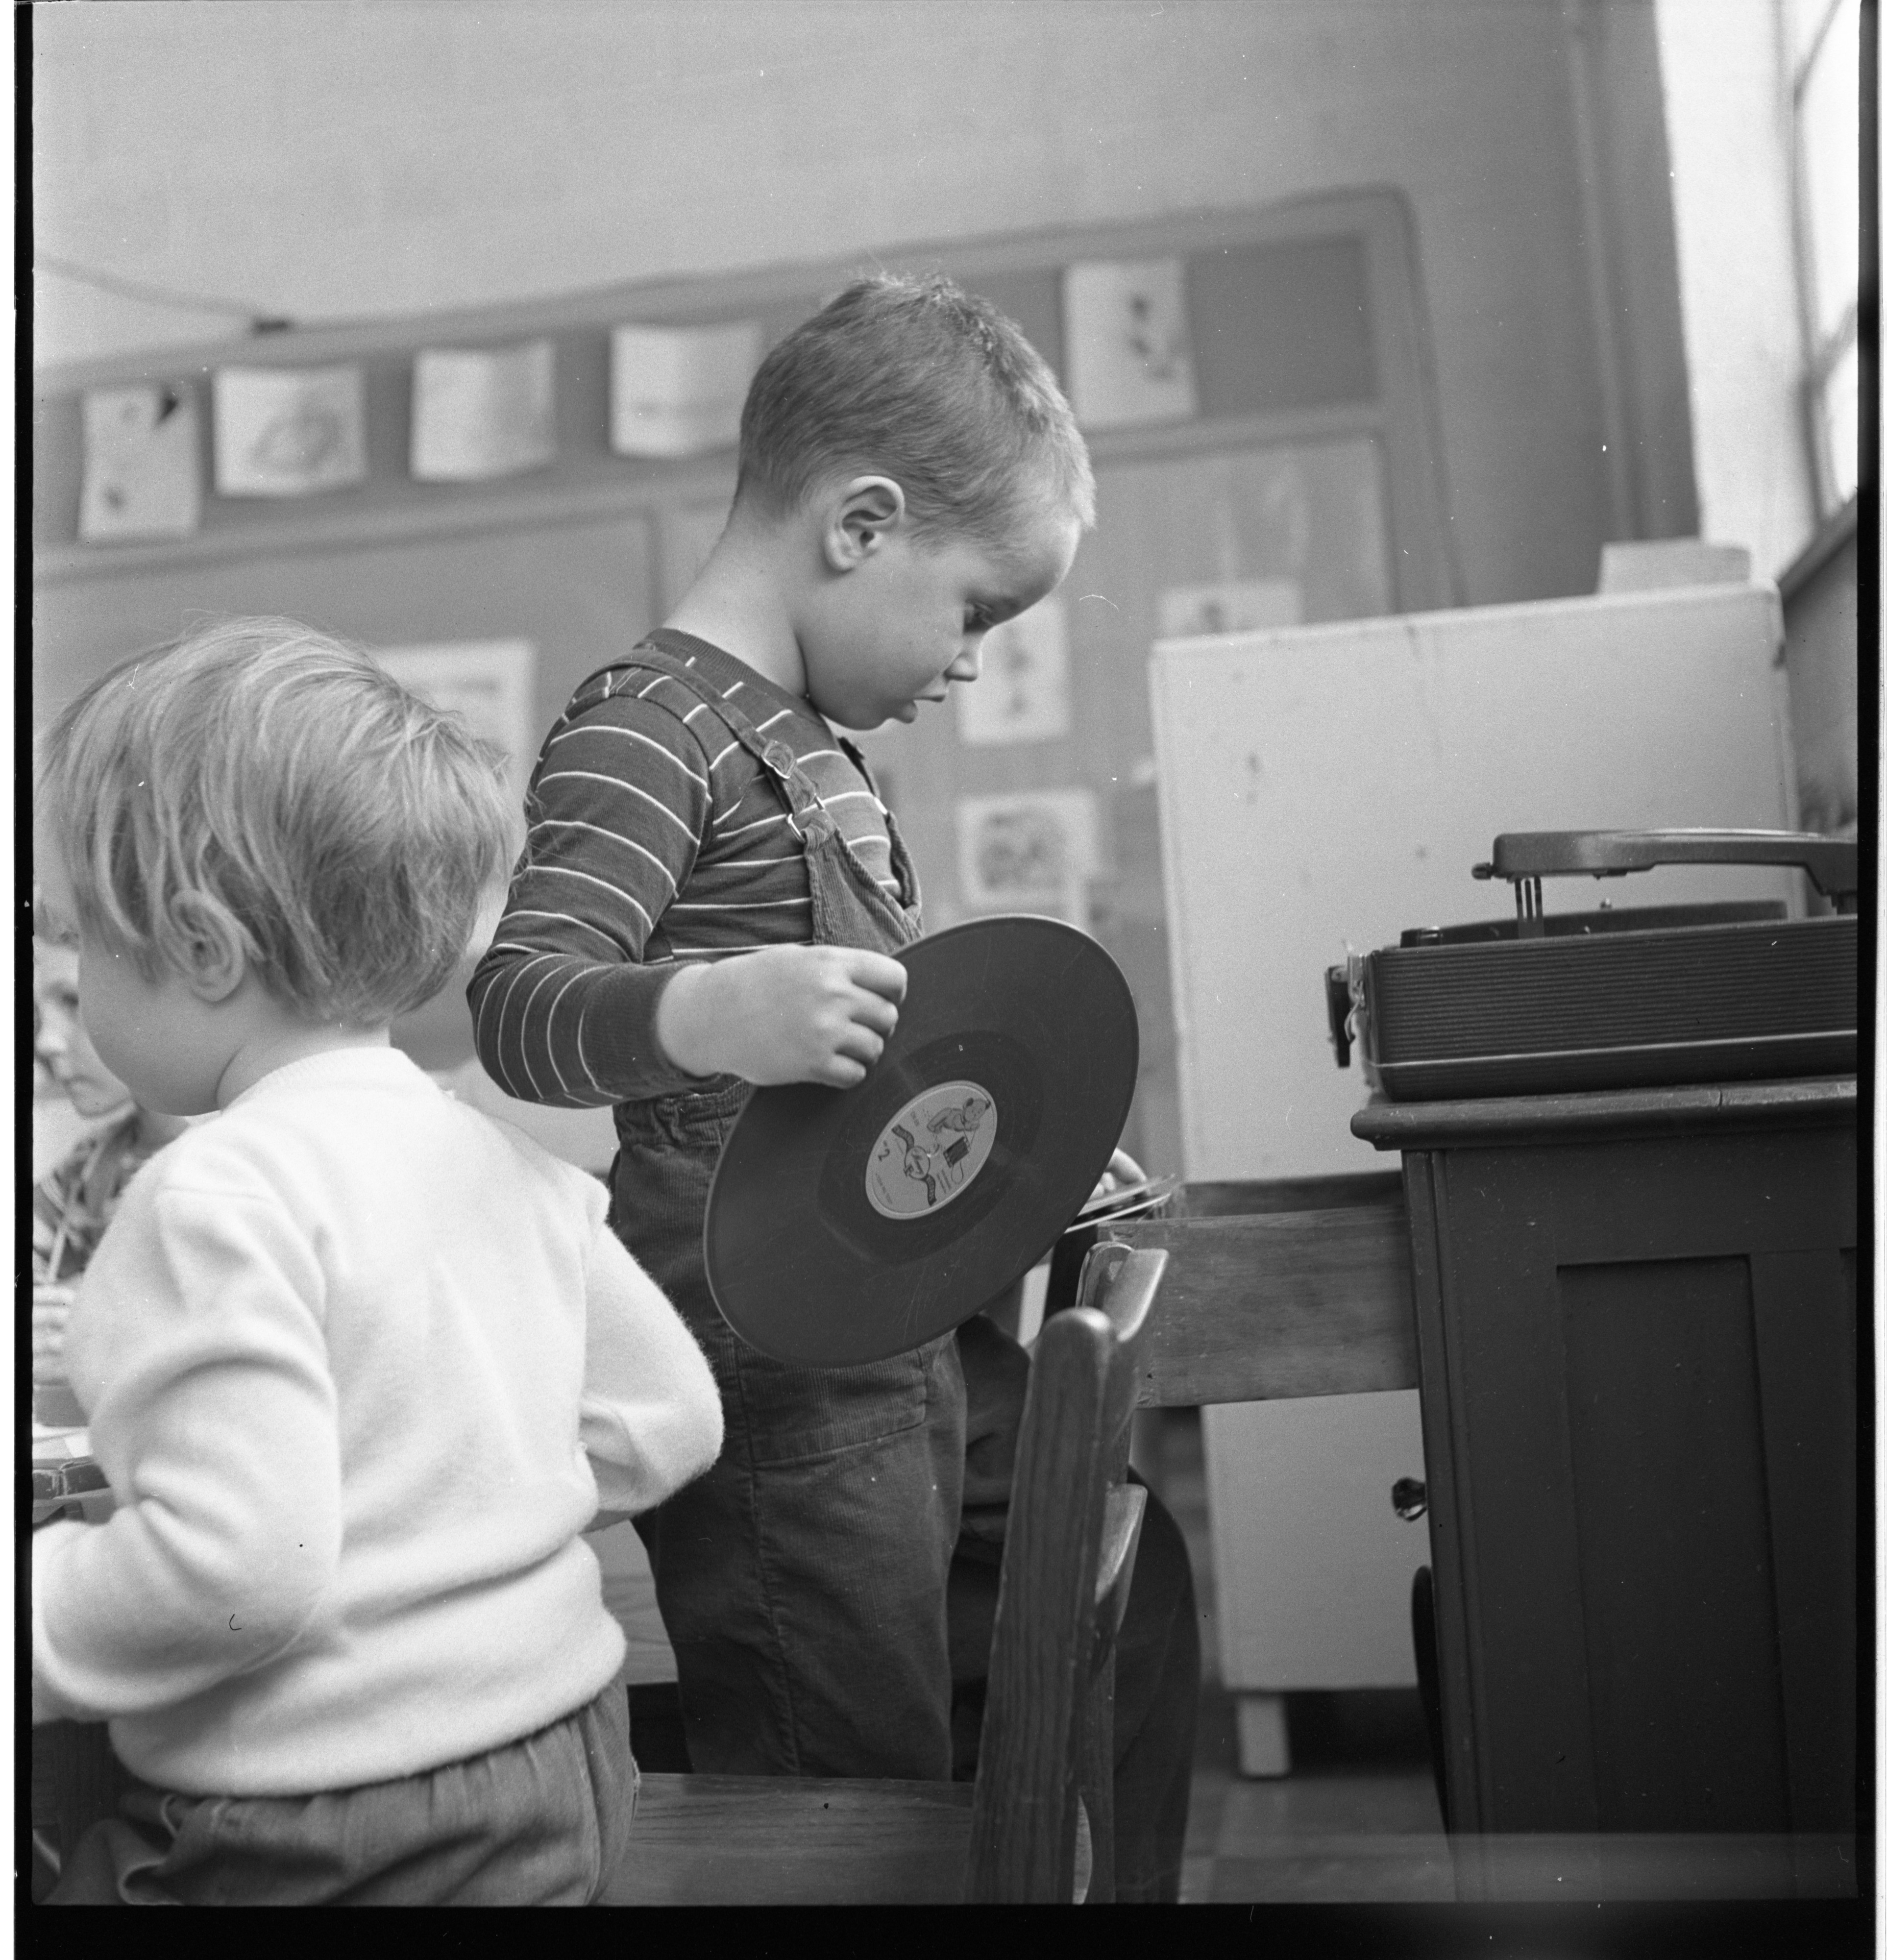 A Child Chooses A Record At The Ann Arbor Co-Operative Nursery School, January 1955 image